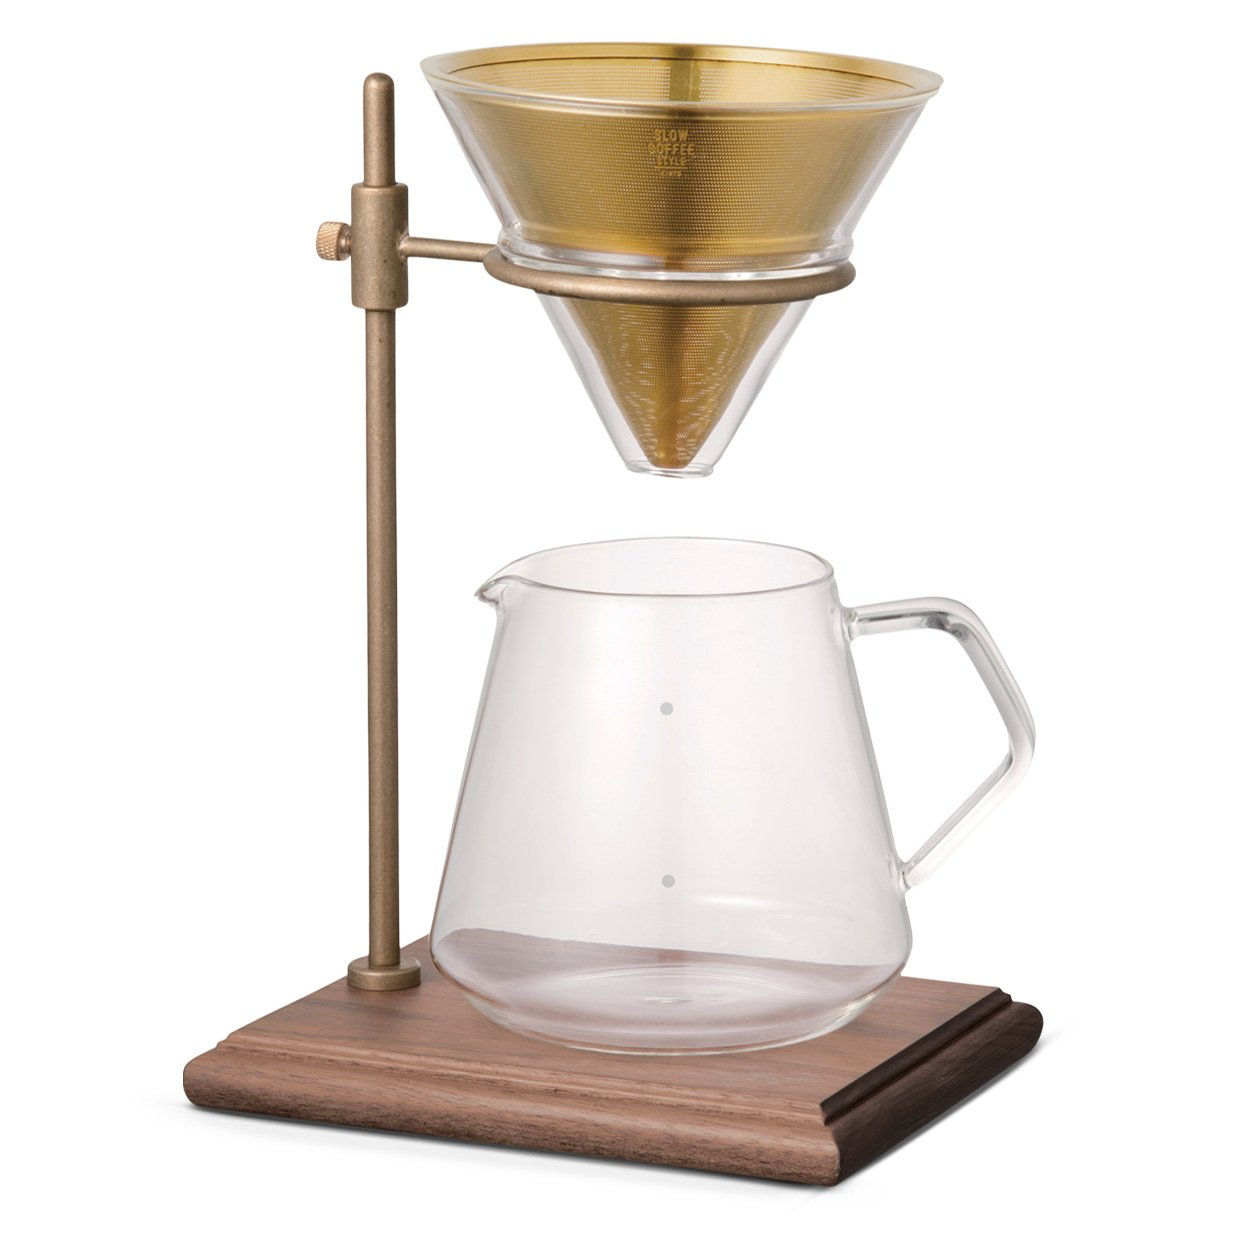 kinto-products-slow-coffee-style-specialty-brewerstand_1260x.jpg